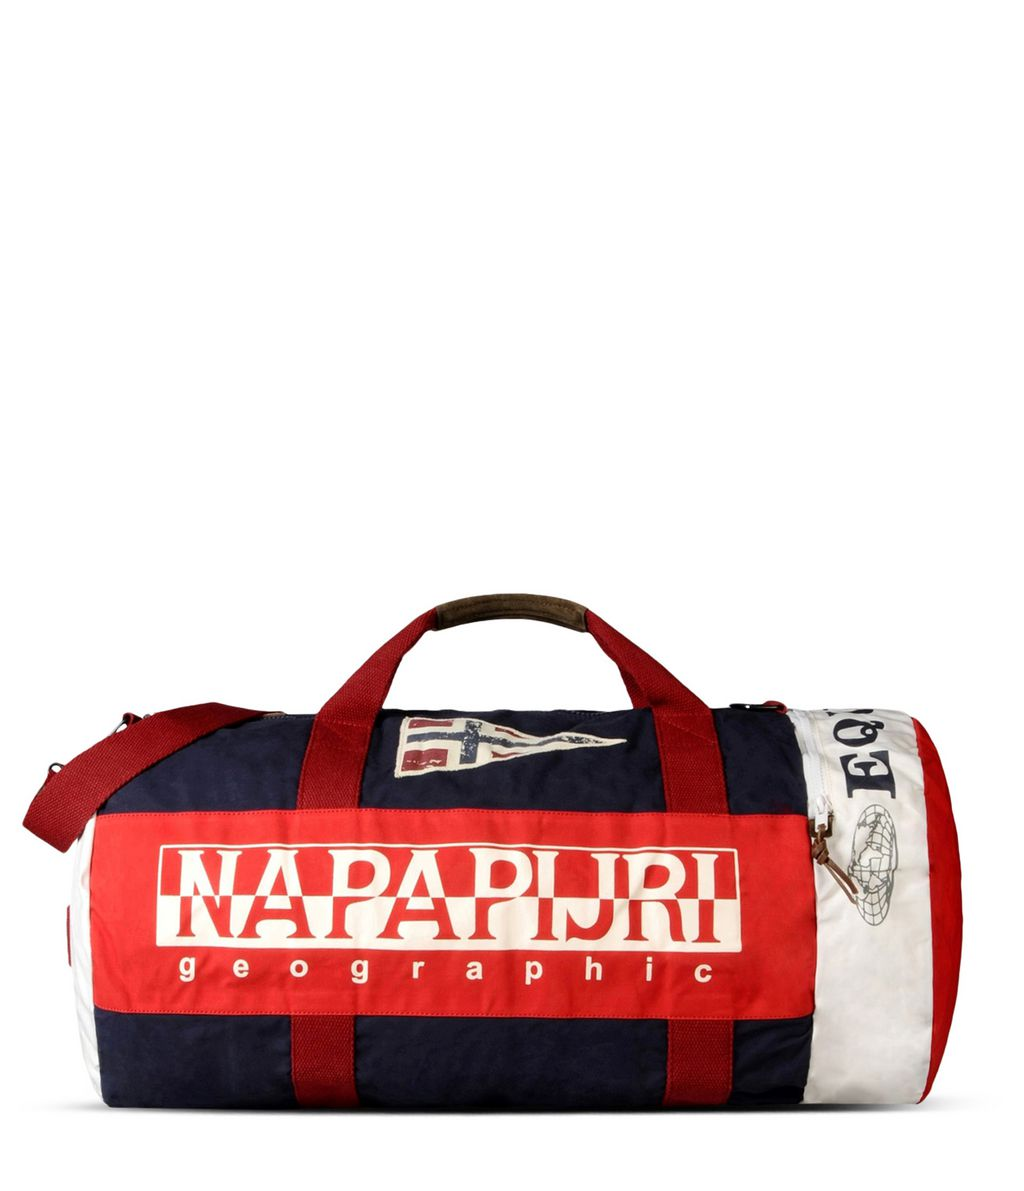 NAPAPIJRI EQUATOR   TRAVEL BAG,RED PEPPER